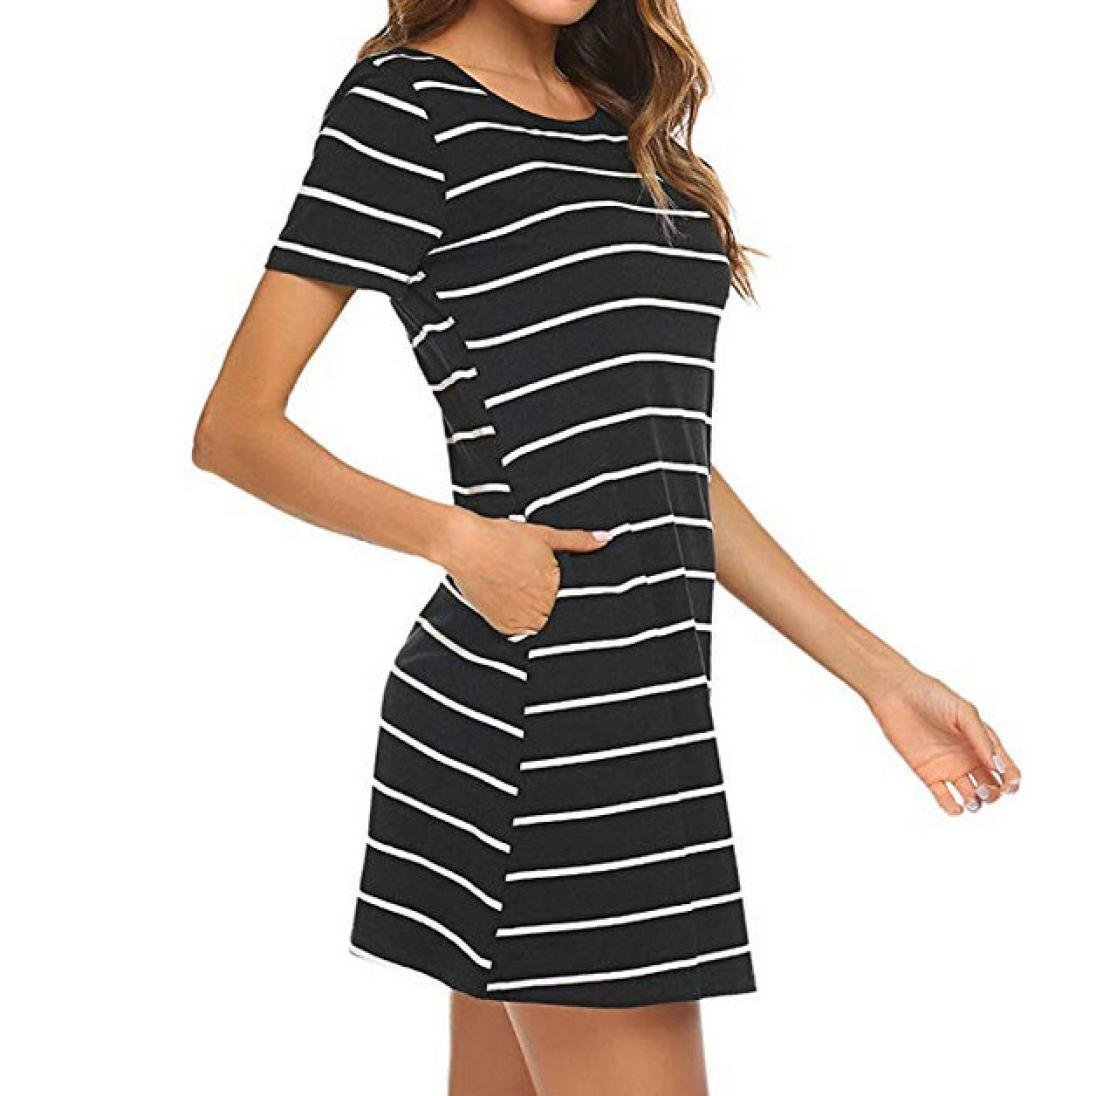 a62a0adac872 Easytoy Women's Casual Striped Criss Cross Short Sleeve T Shirt Mini Dress  with Pockets: Amazon.in: Clothing & Accessories